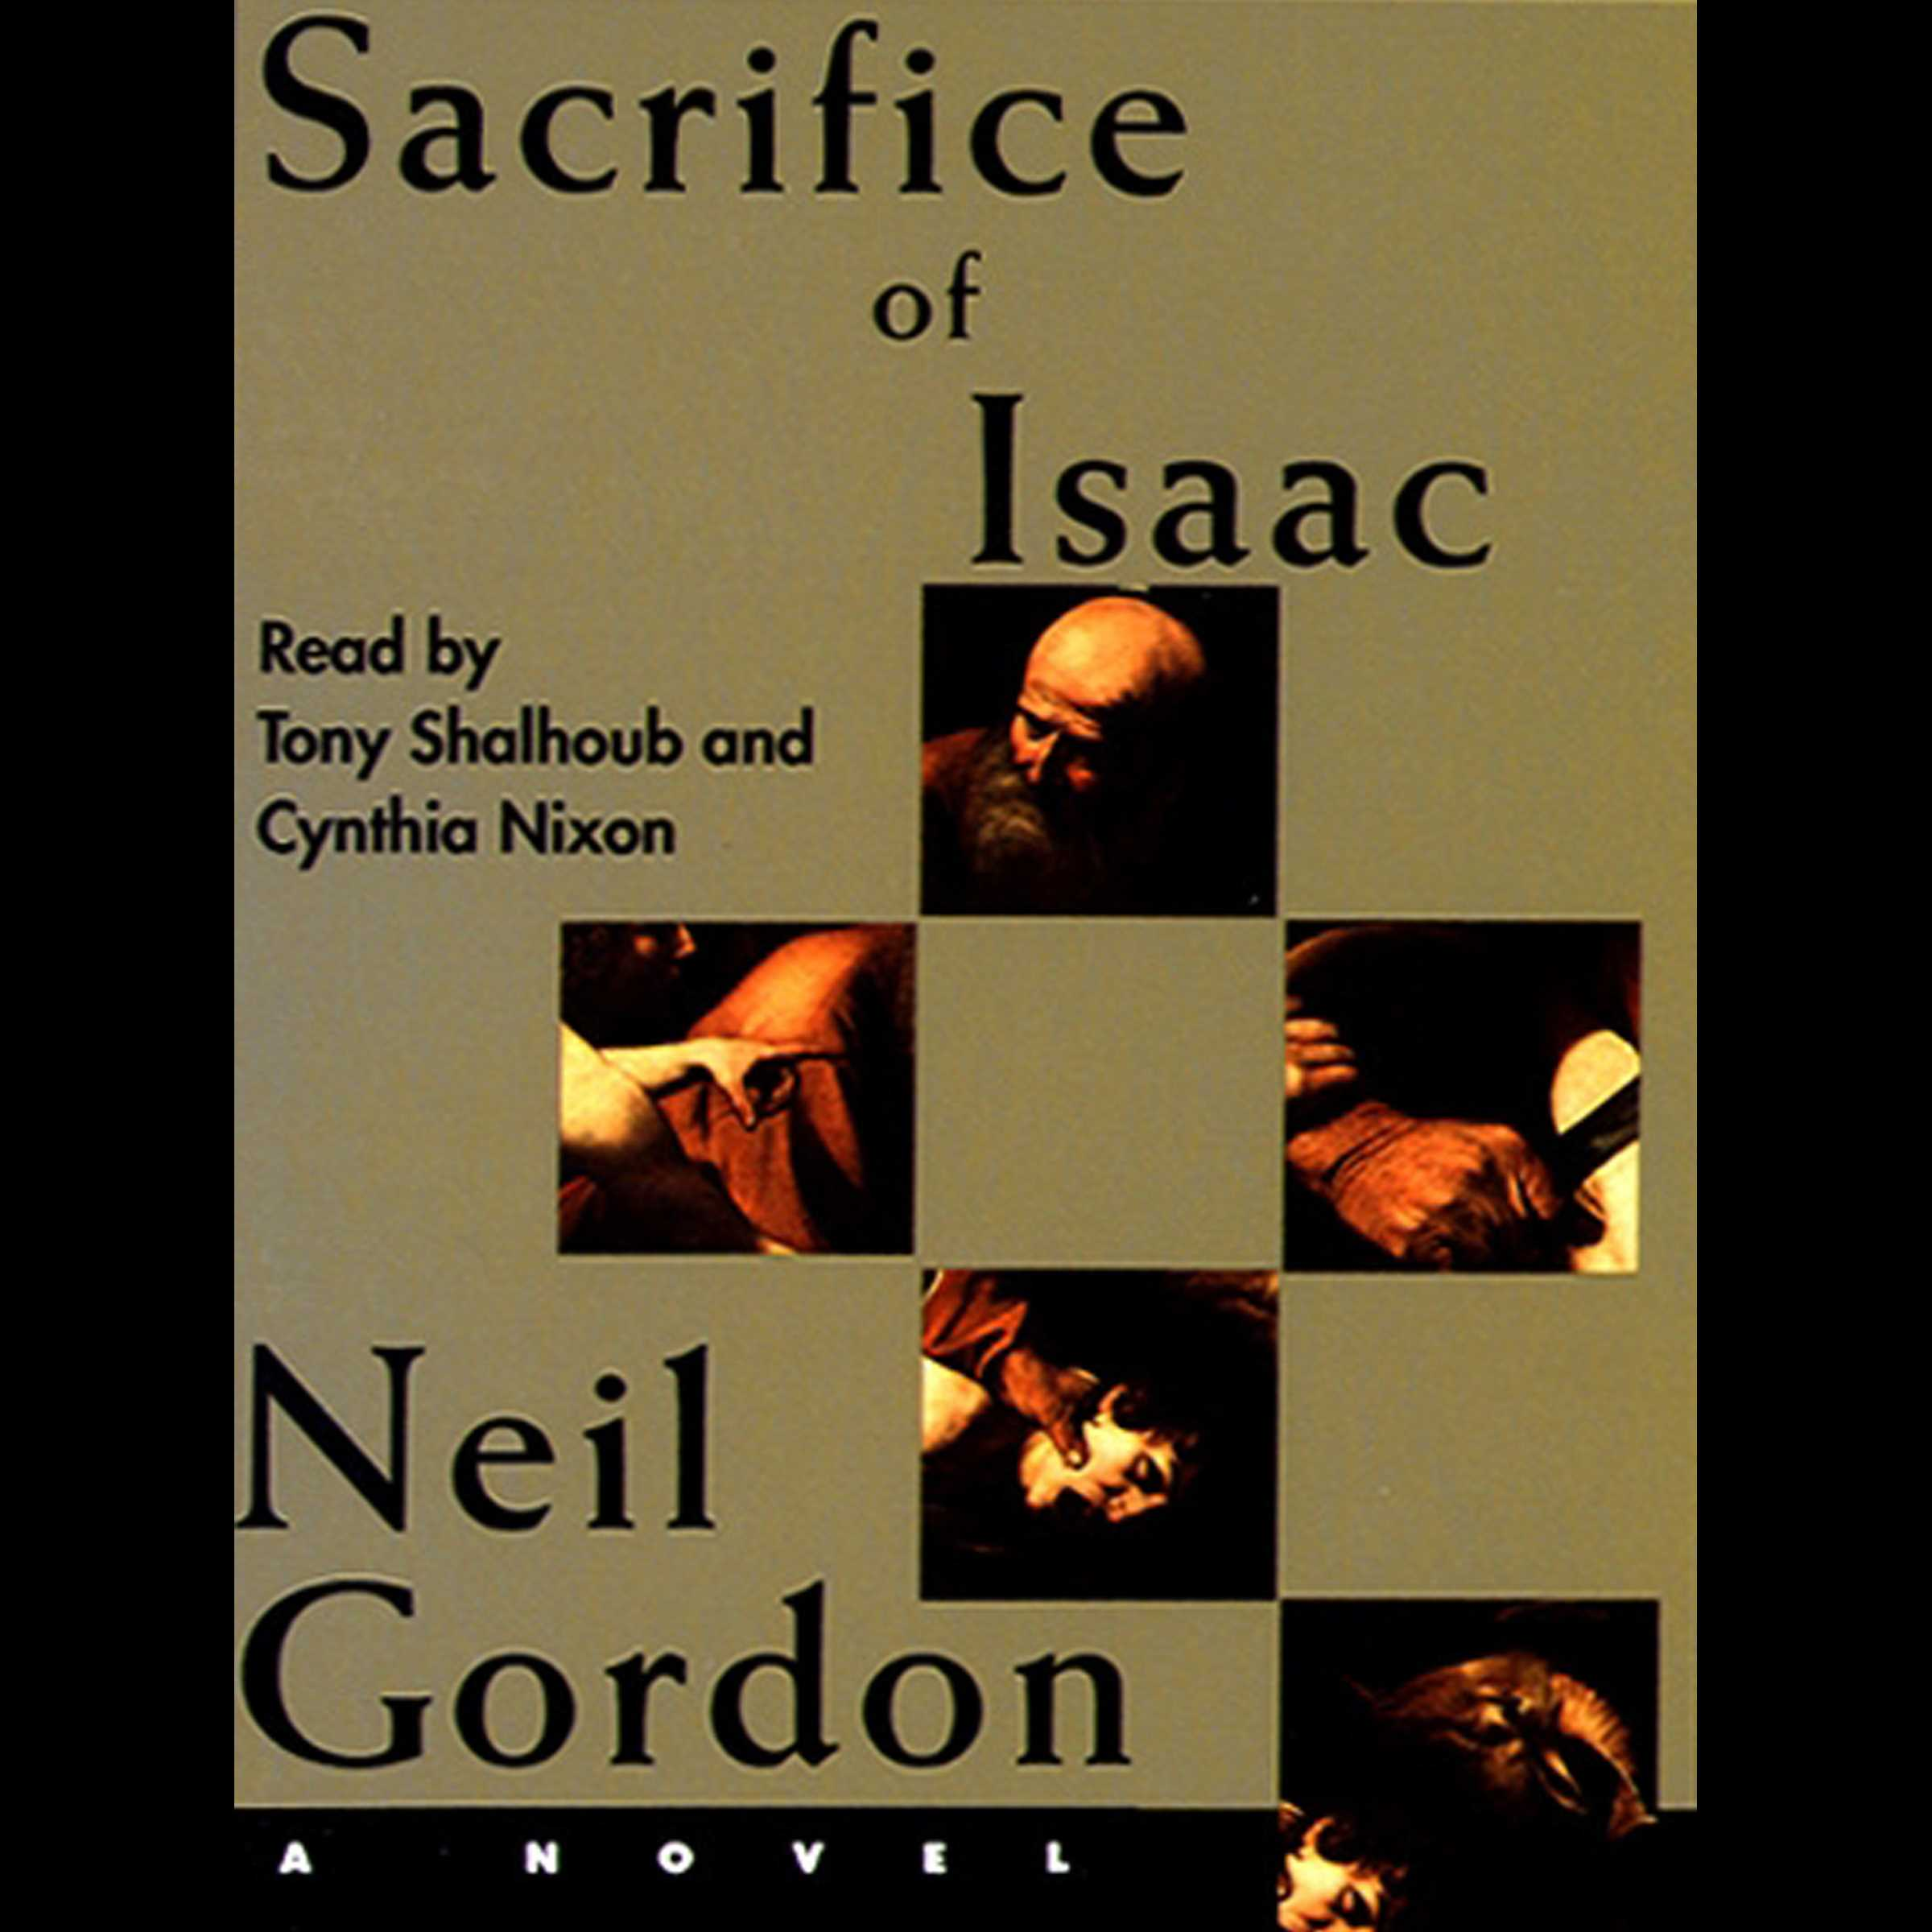 Sacrifice-of-isaac-9780743540513_hr